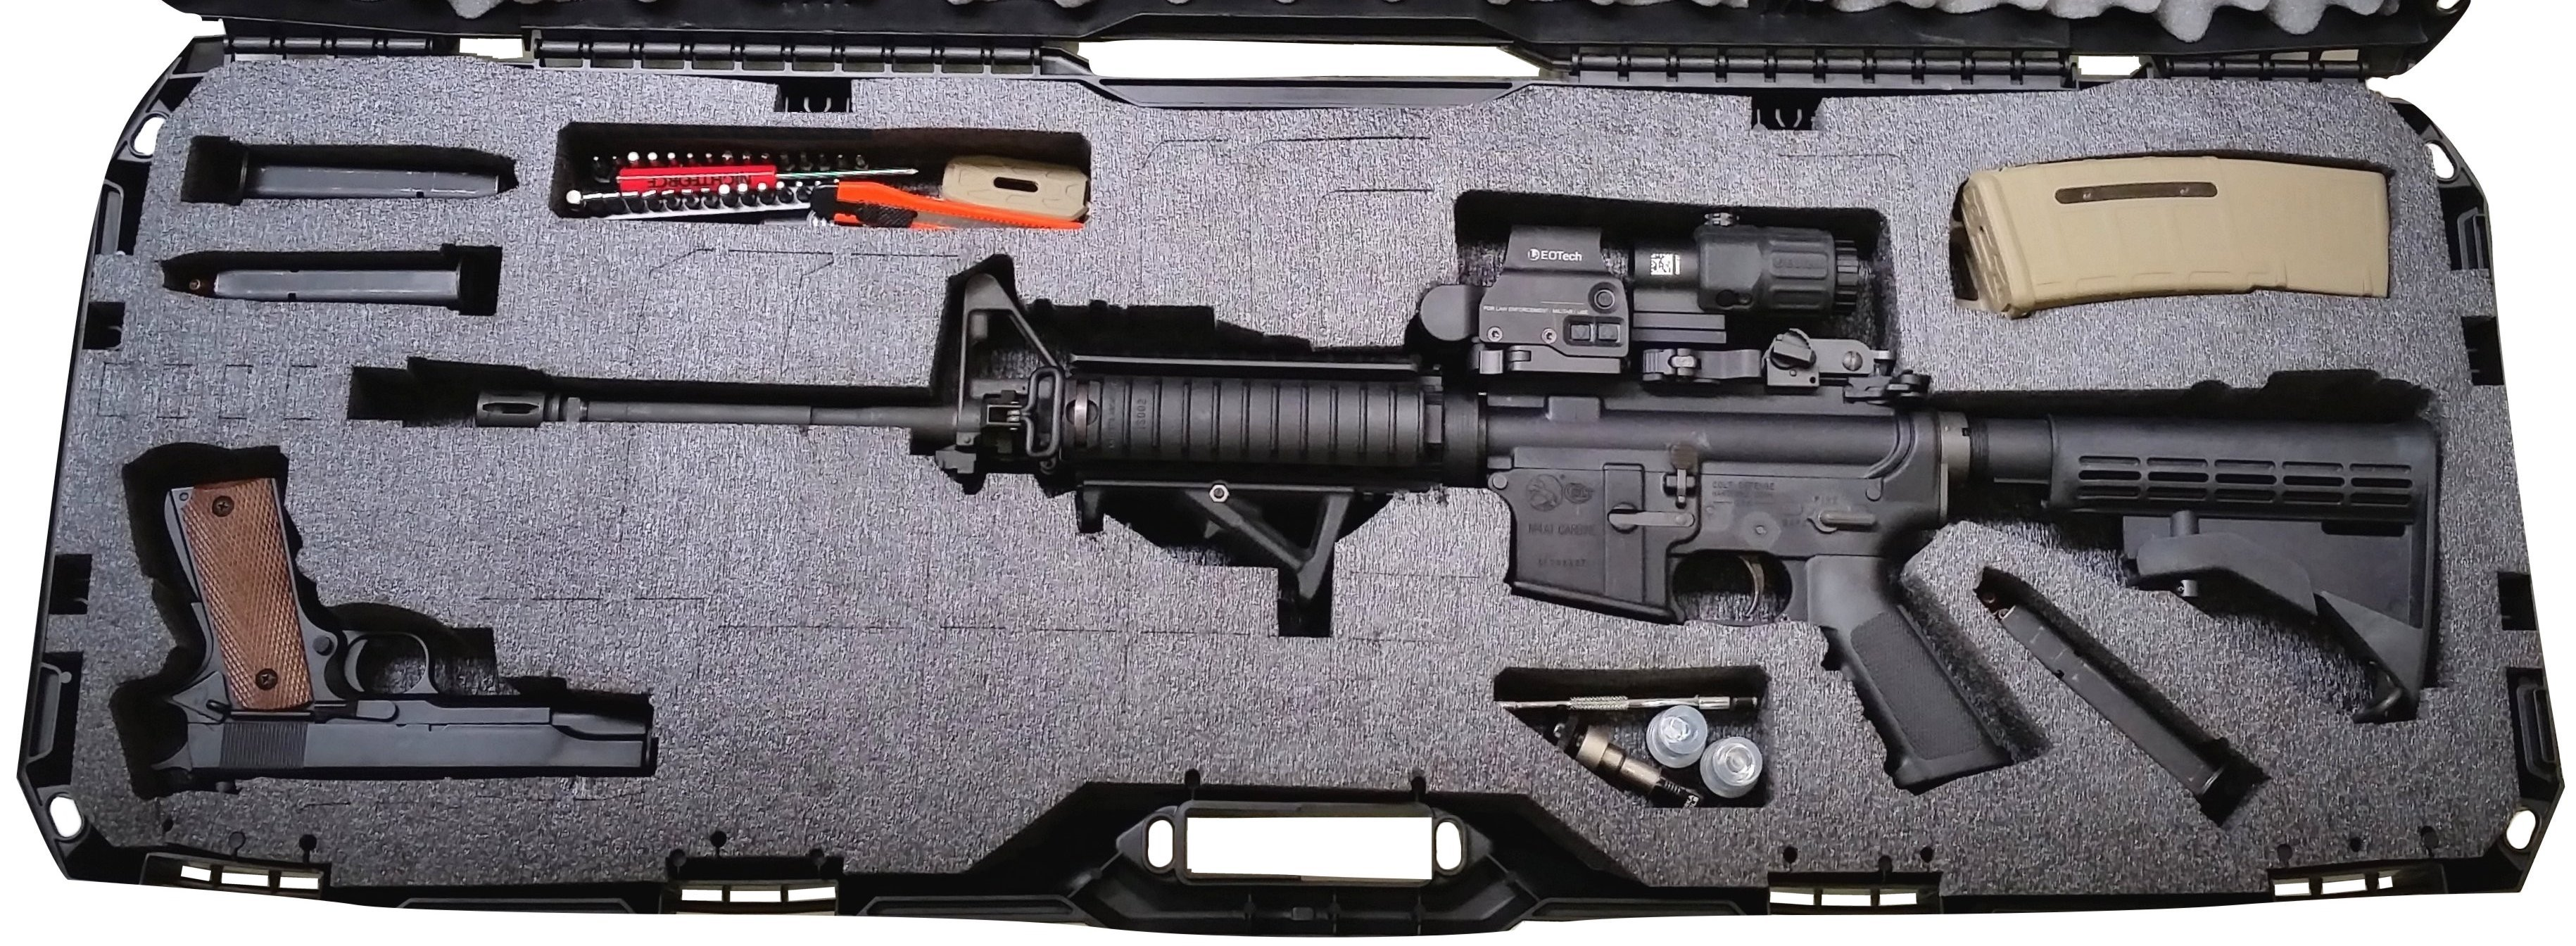 Ar15 Carry Case Picture 4